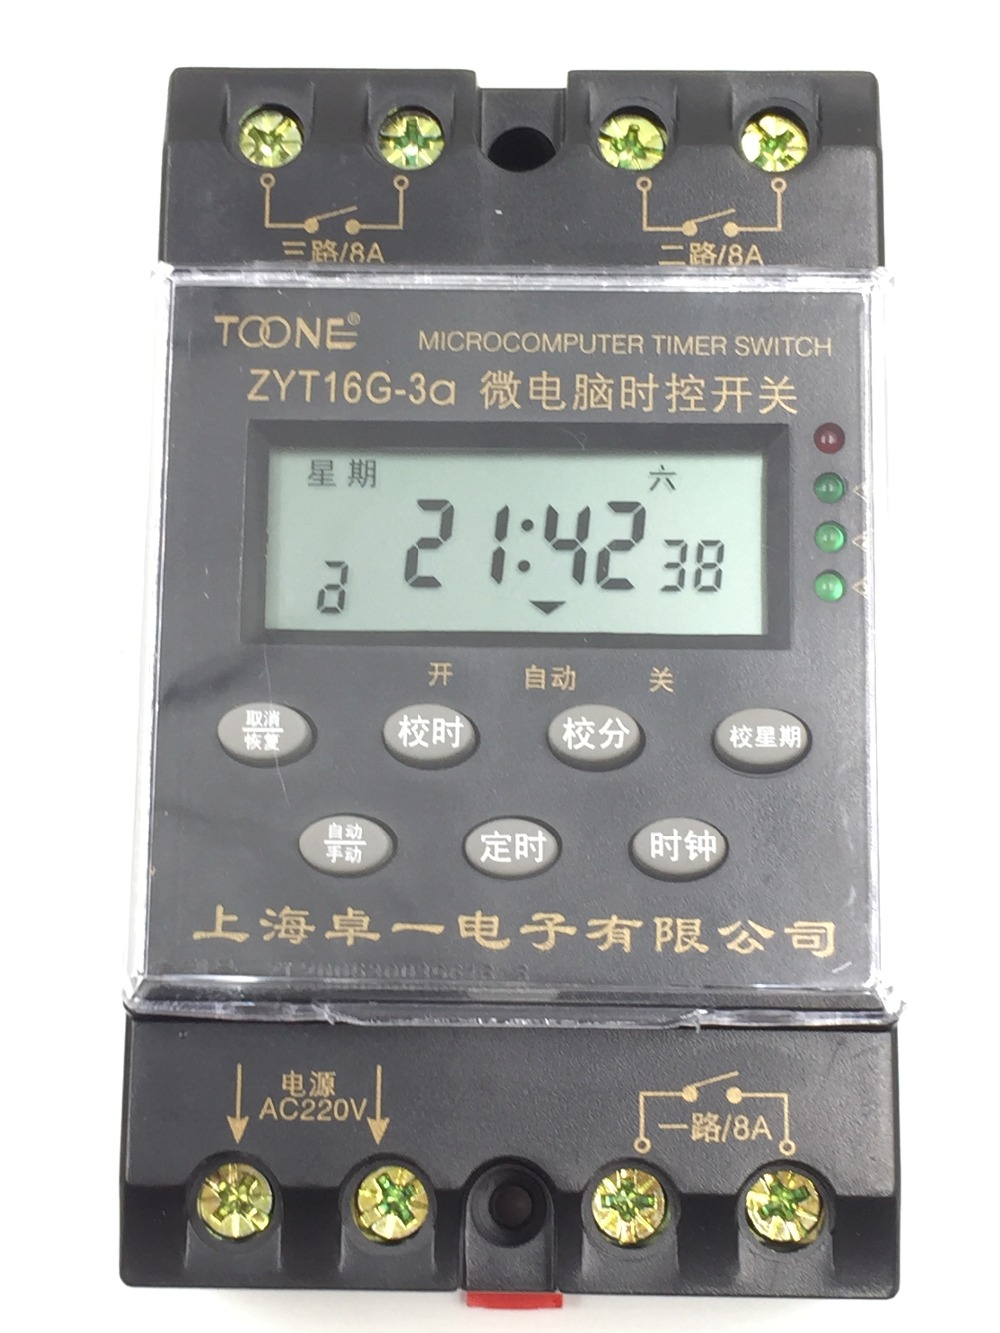 Zhuo one three road multi loop control switch lamp timer timer switch KG316T ZYT16G-3a zhuo qi